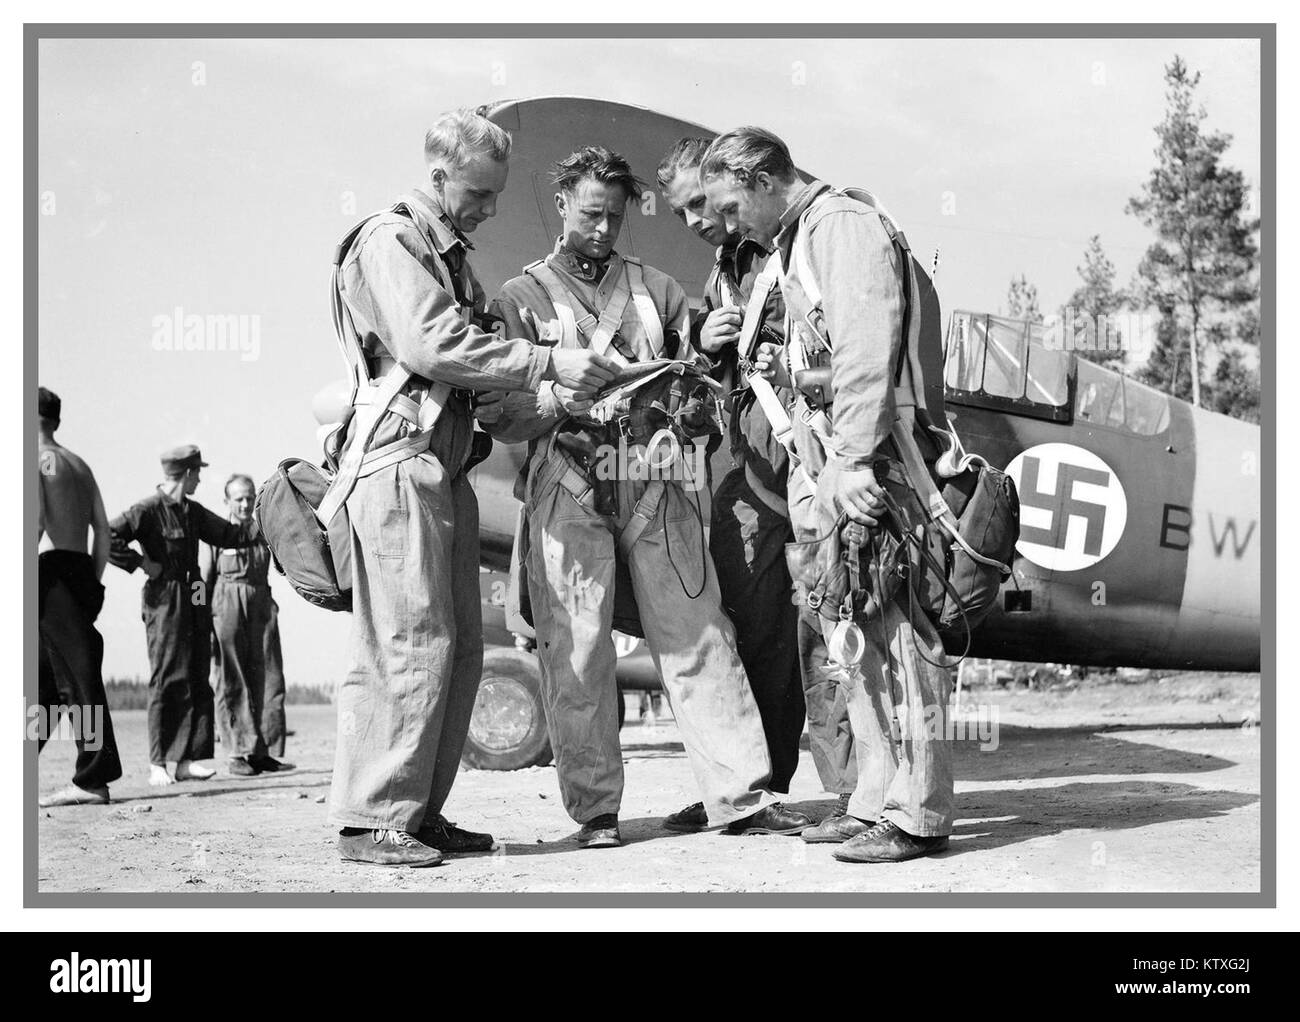 Finnish Airforce pilots during Winter War with American Brewster F2A Fighter planes behind with Swastika emblem - Stock Image